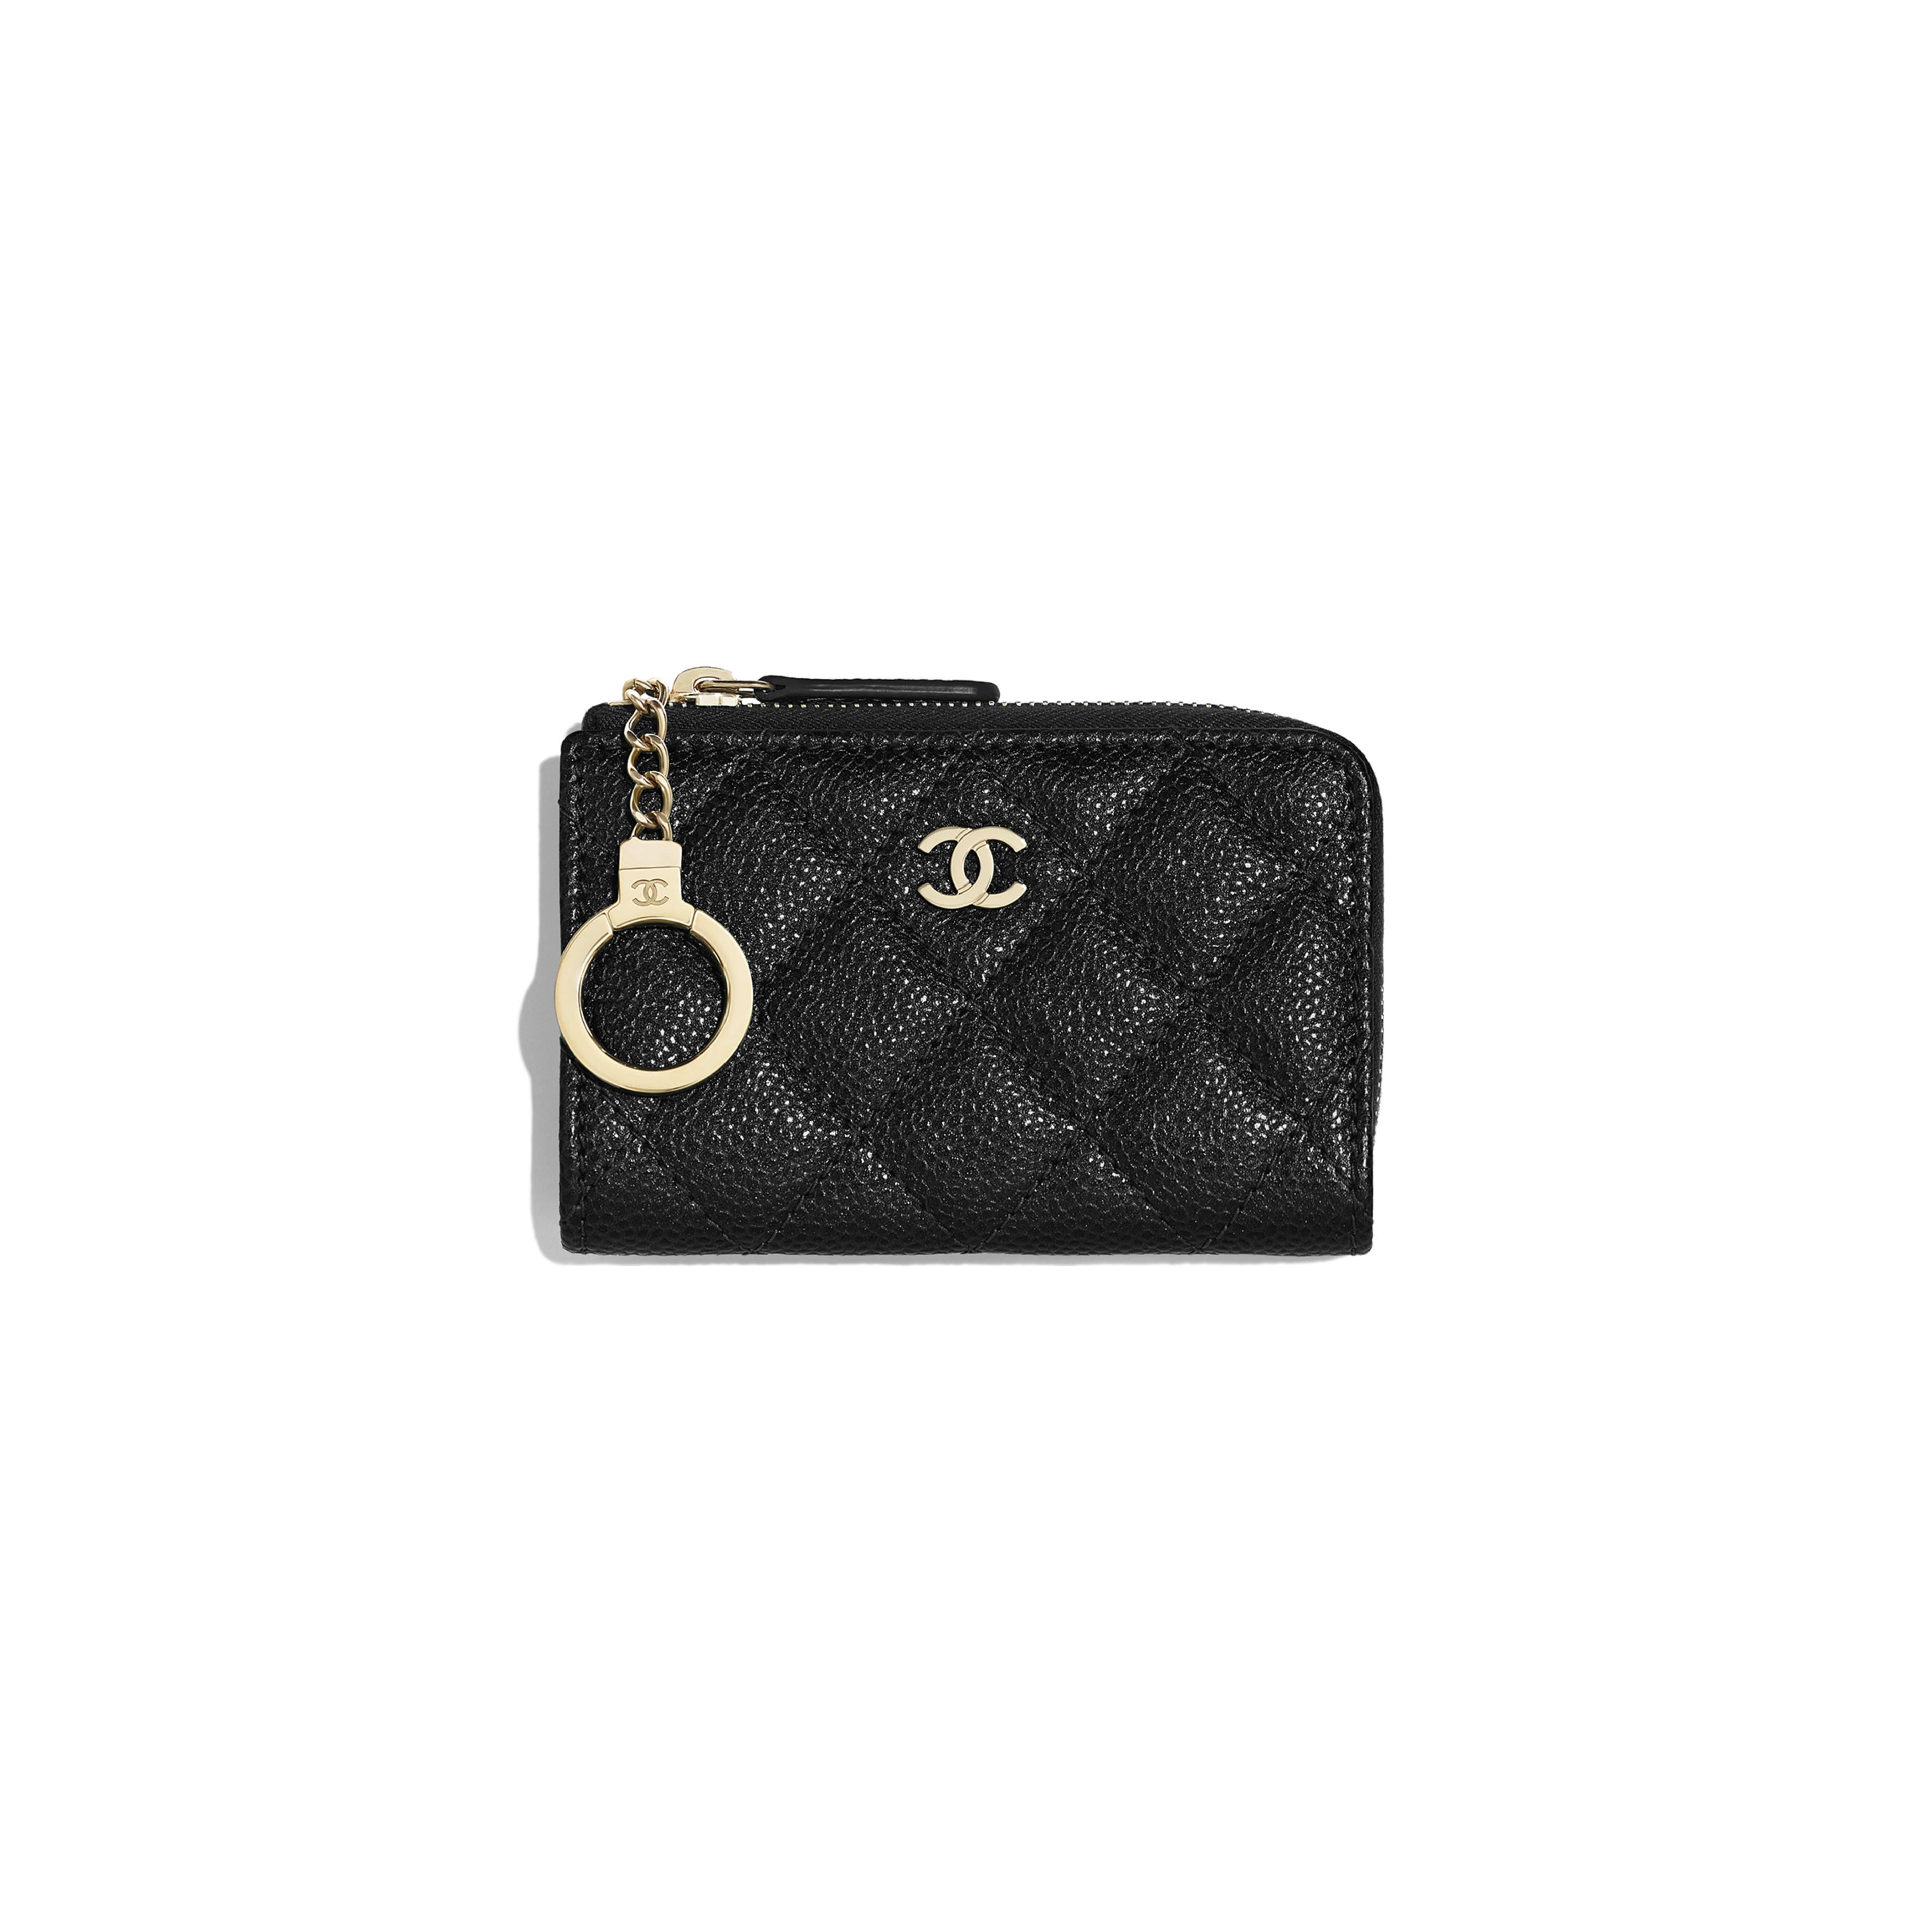 Classic Zipped Key Holder - Black - Grained Calfskin & Gold-Tone Metal - Default view - see full sized version